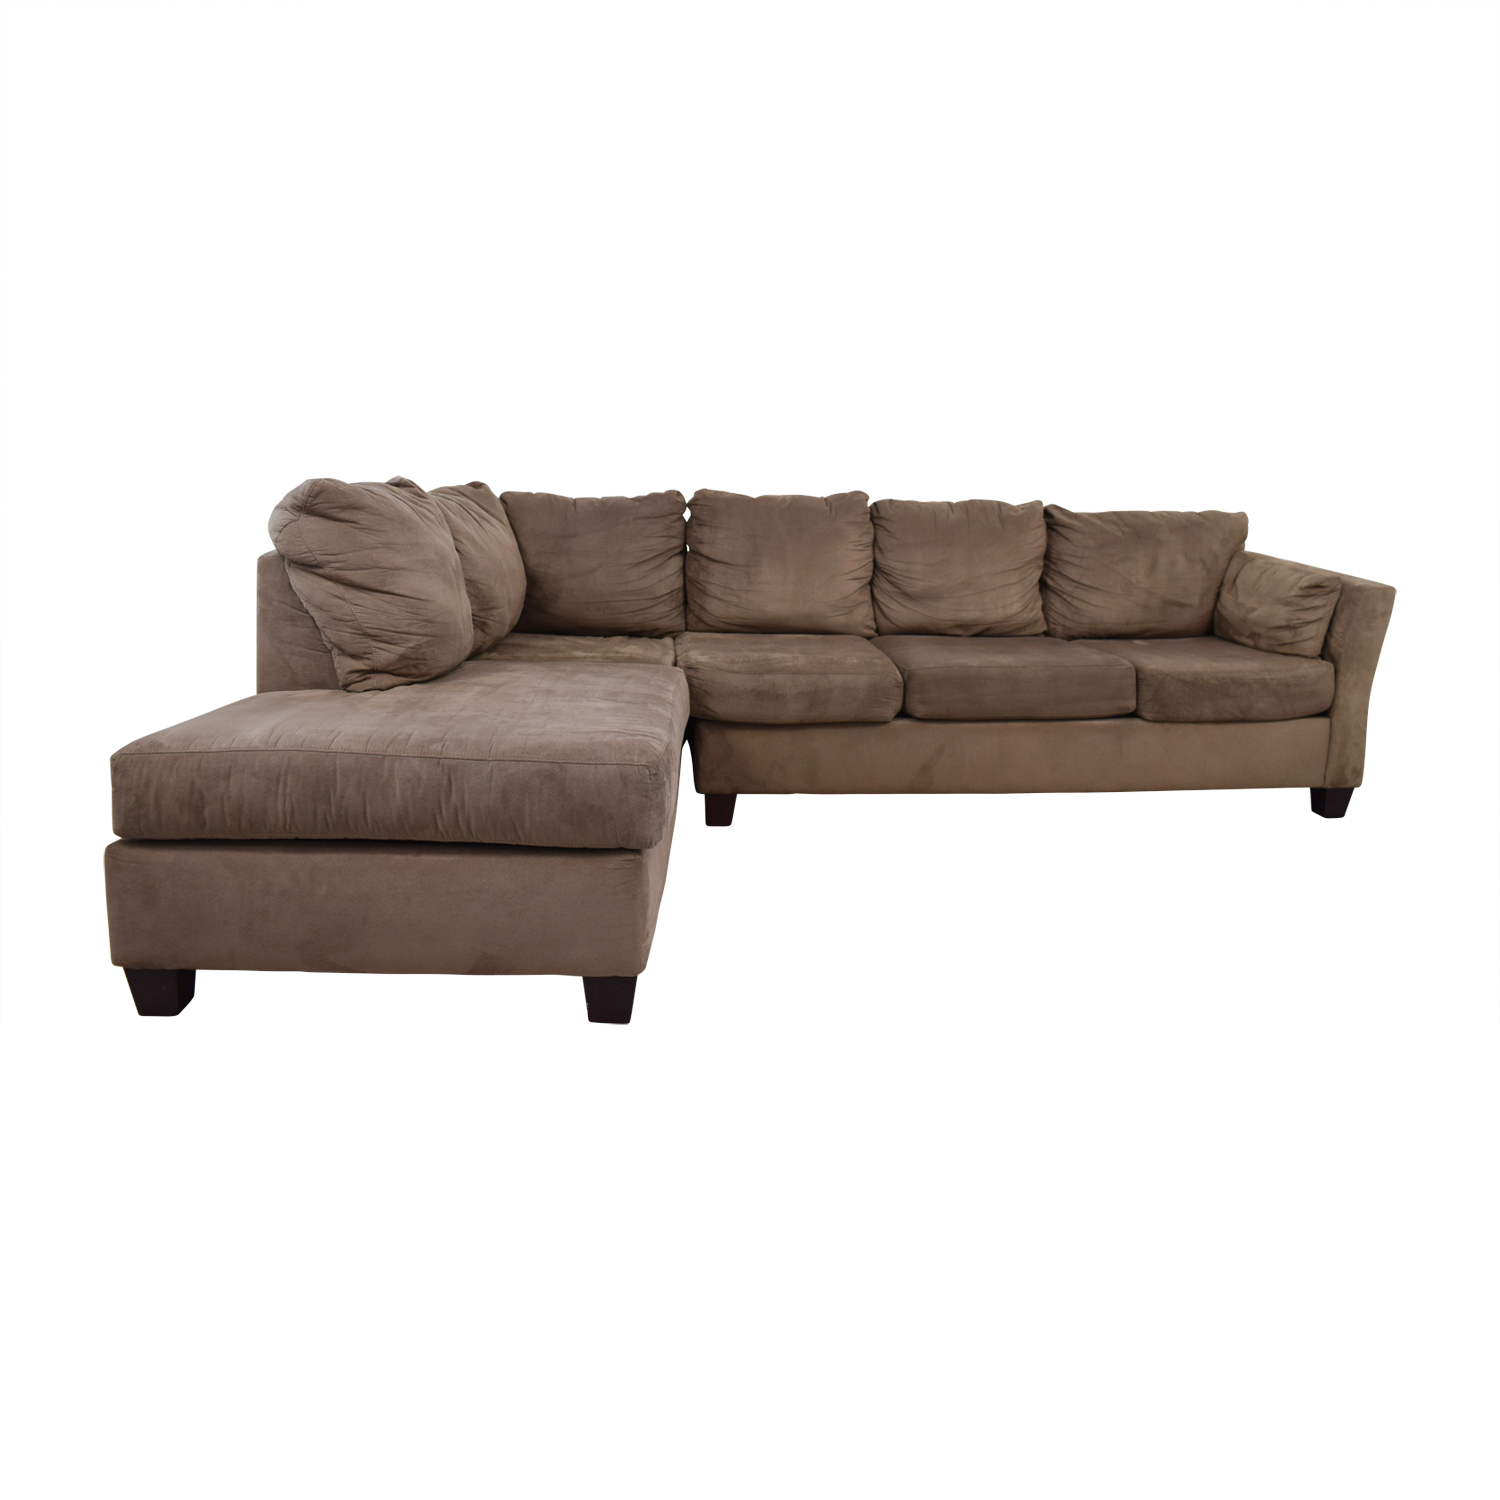 Sectional Sofas Bobs 52 Off Bob S Furniture Brown Microfiber Thesofa